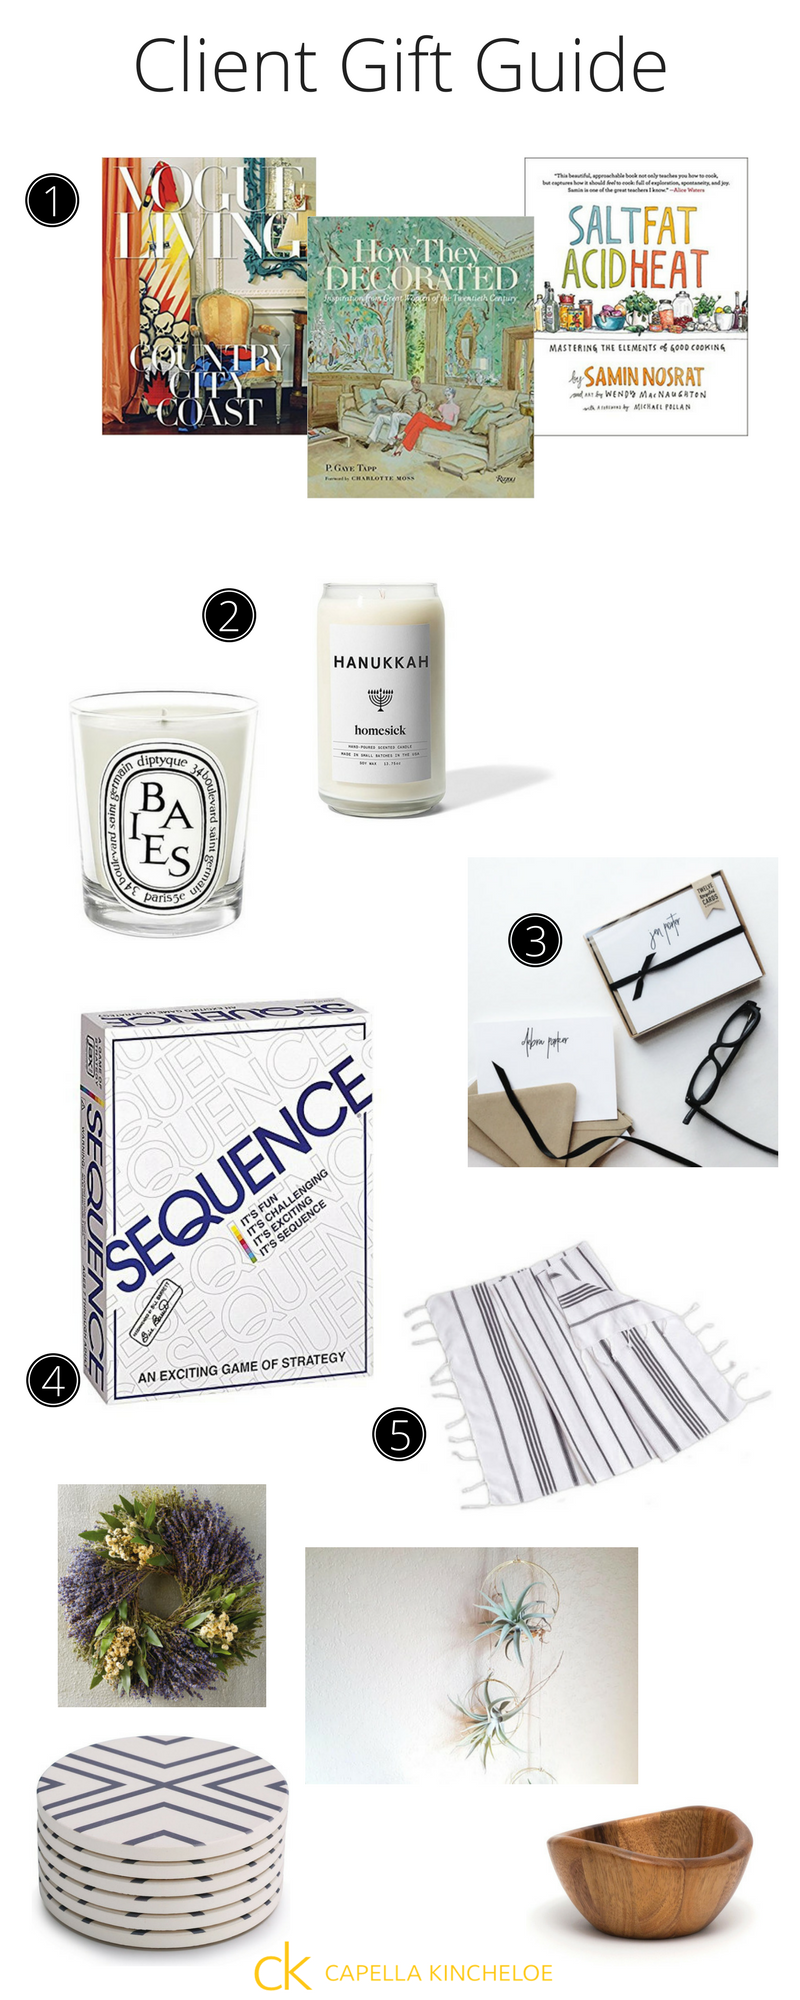 Ultimate client gift guide - the things that you should get for clients for the holidays.